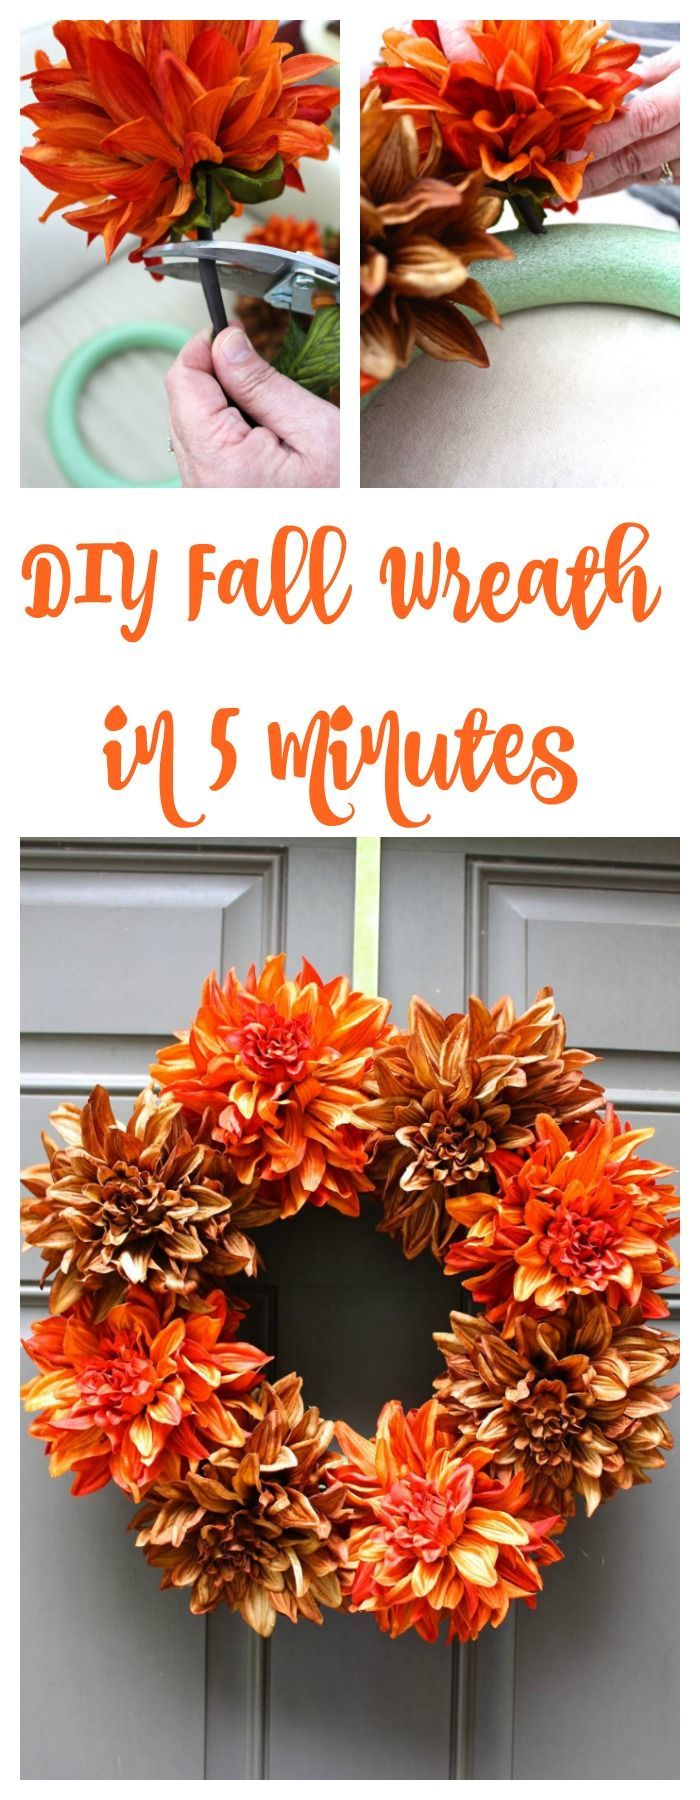 Easy Fall Wreath #diyfalldecor